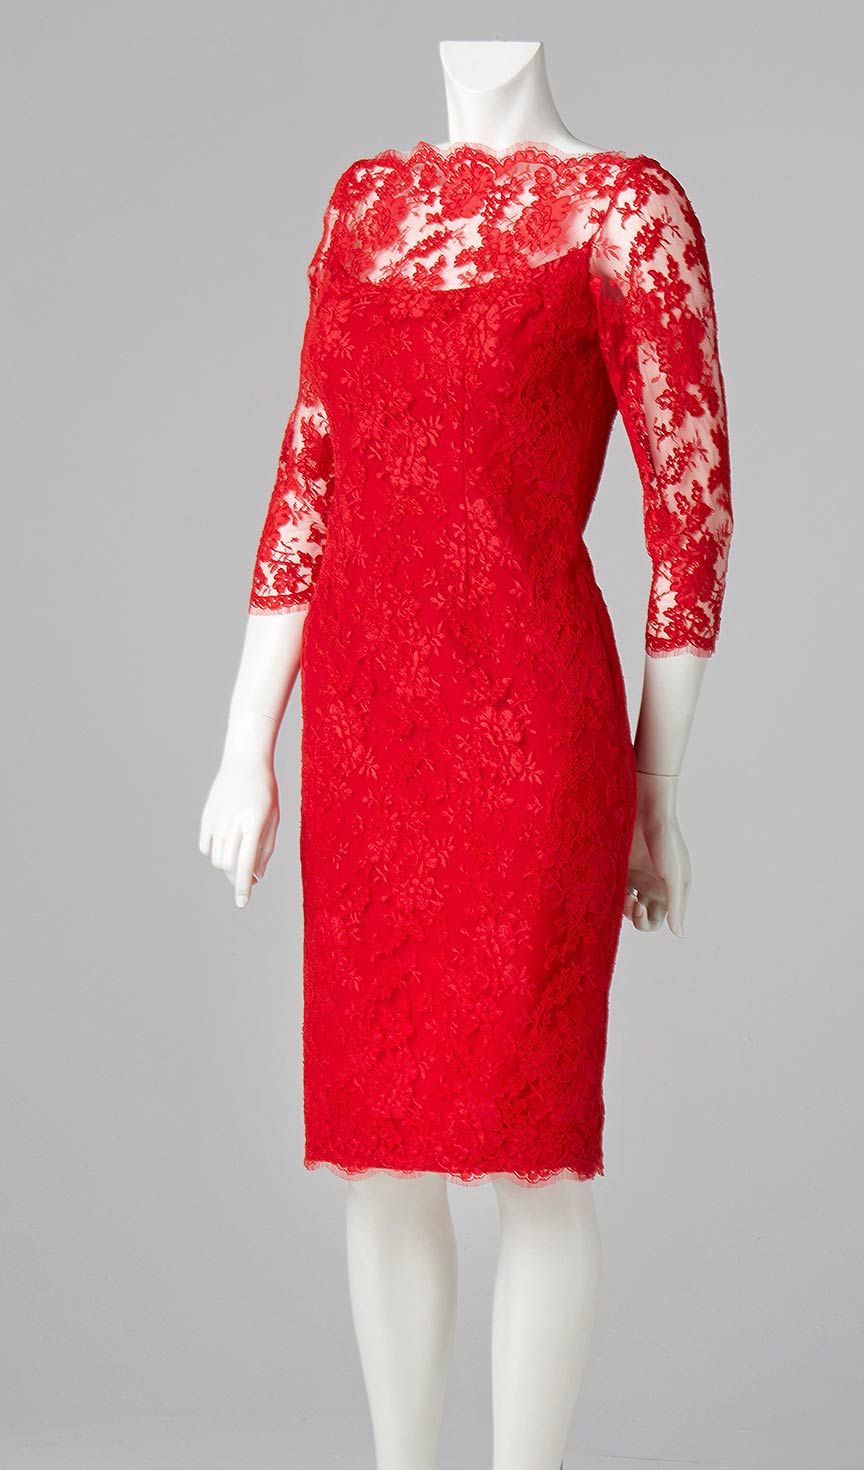 red french lace shift dress couture designer allison rodger london